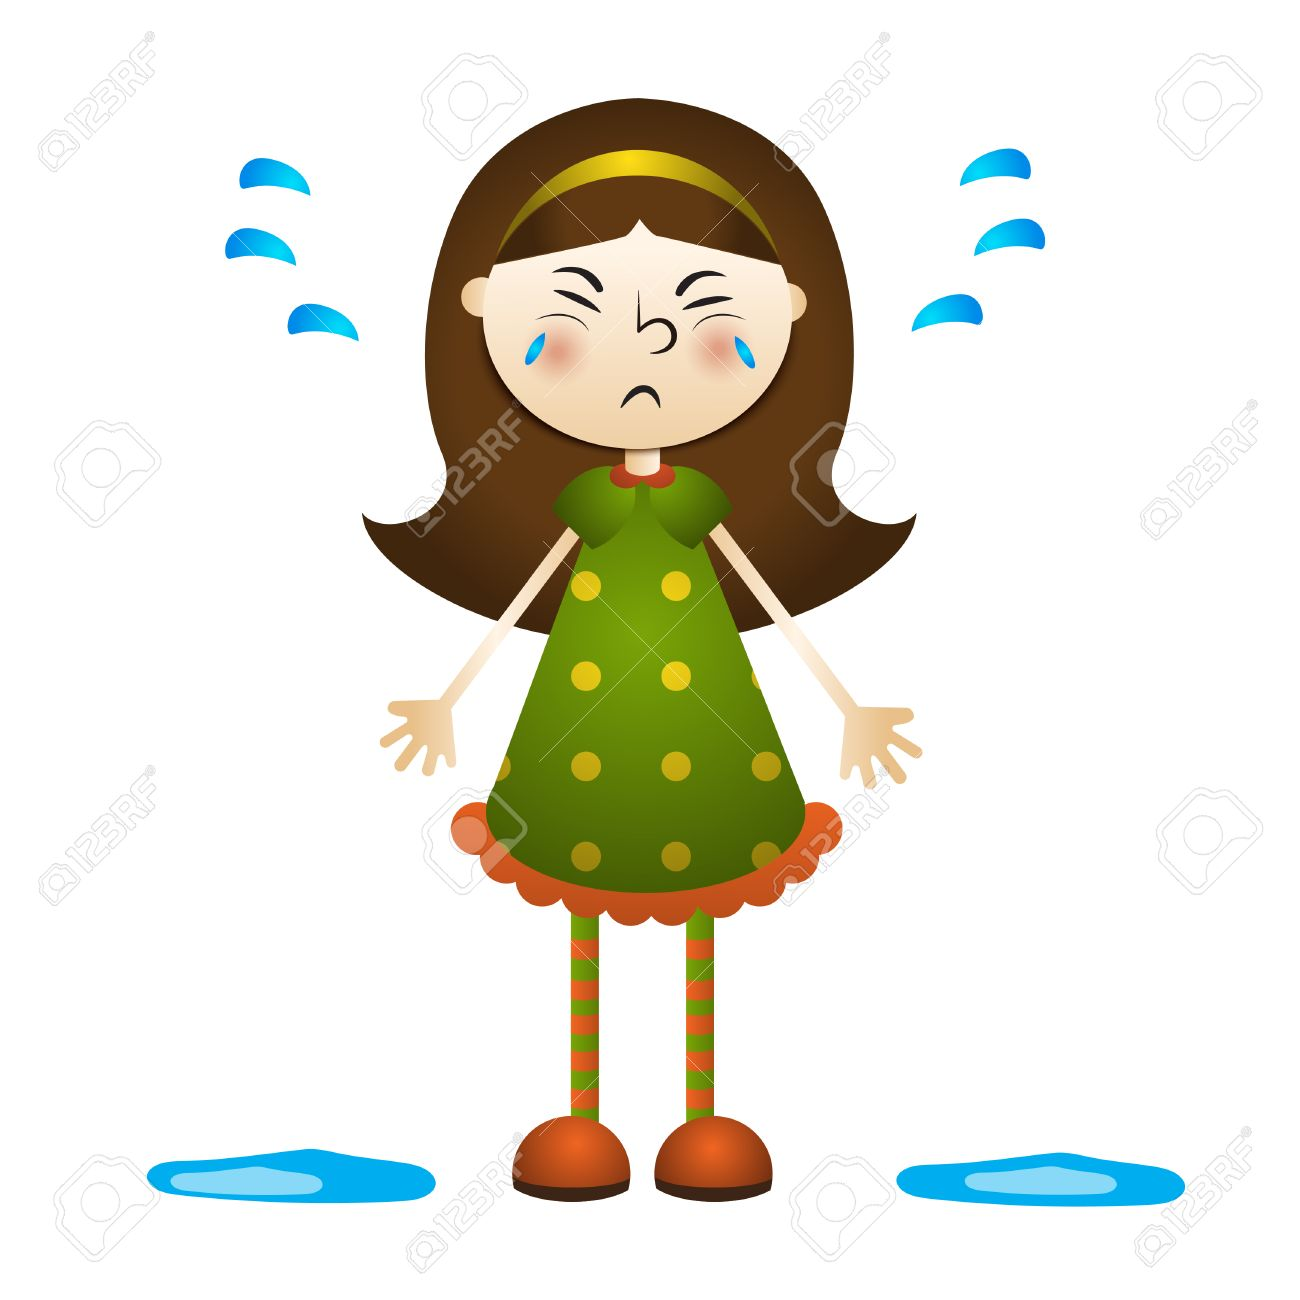 Cartoon illustration of a little girl crying. Vector clipart...